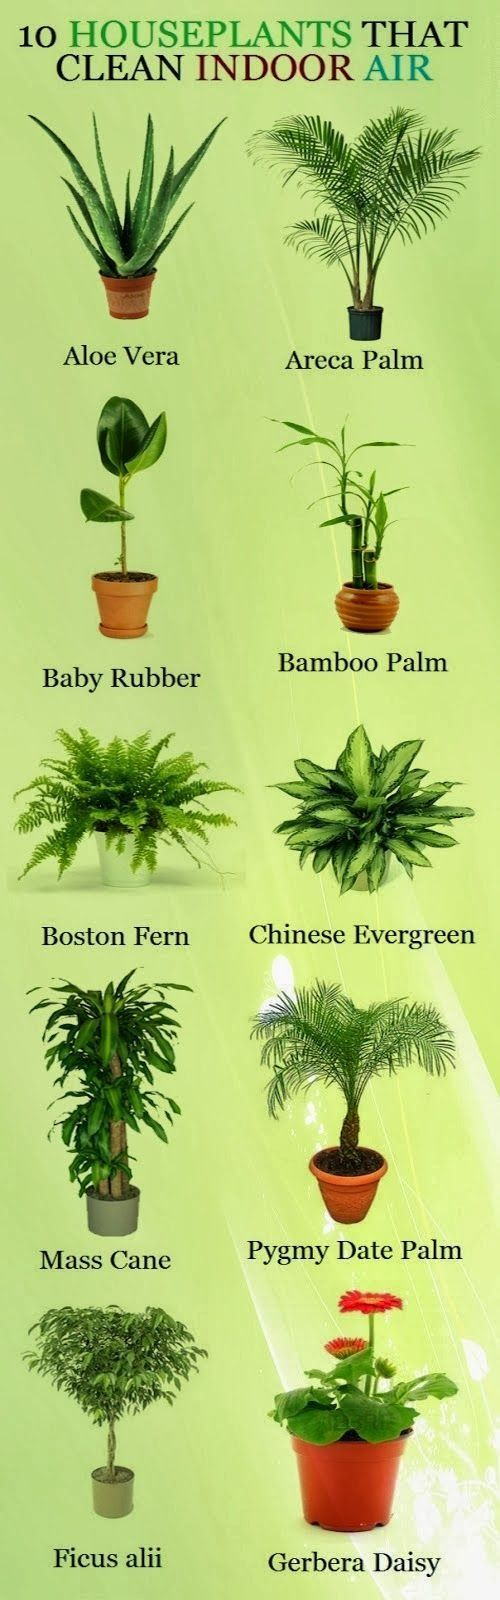 Plants that clean indoor air